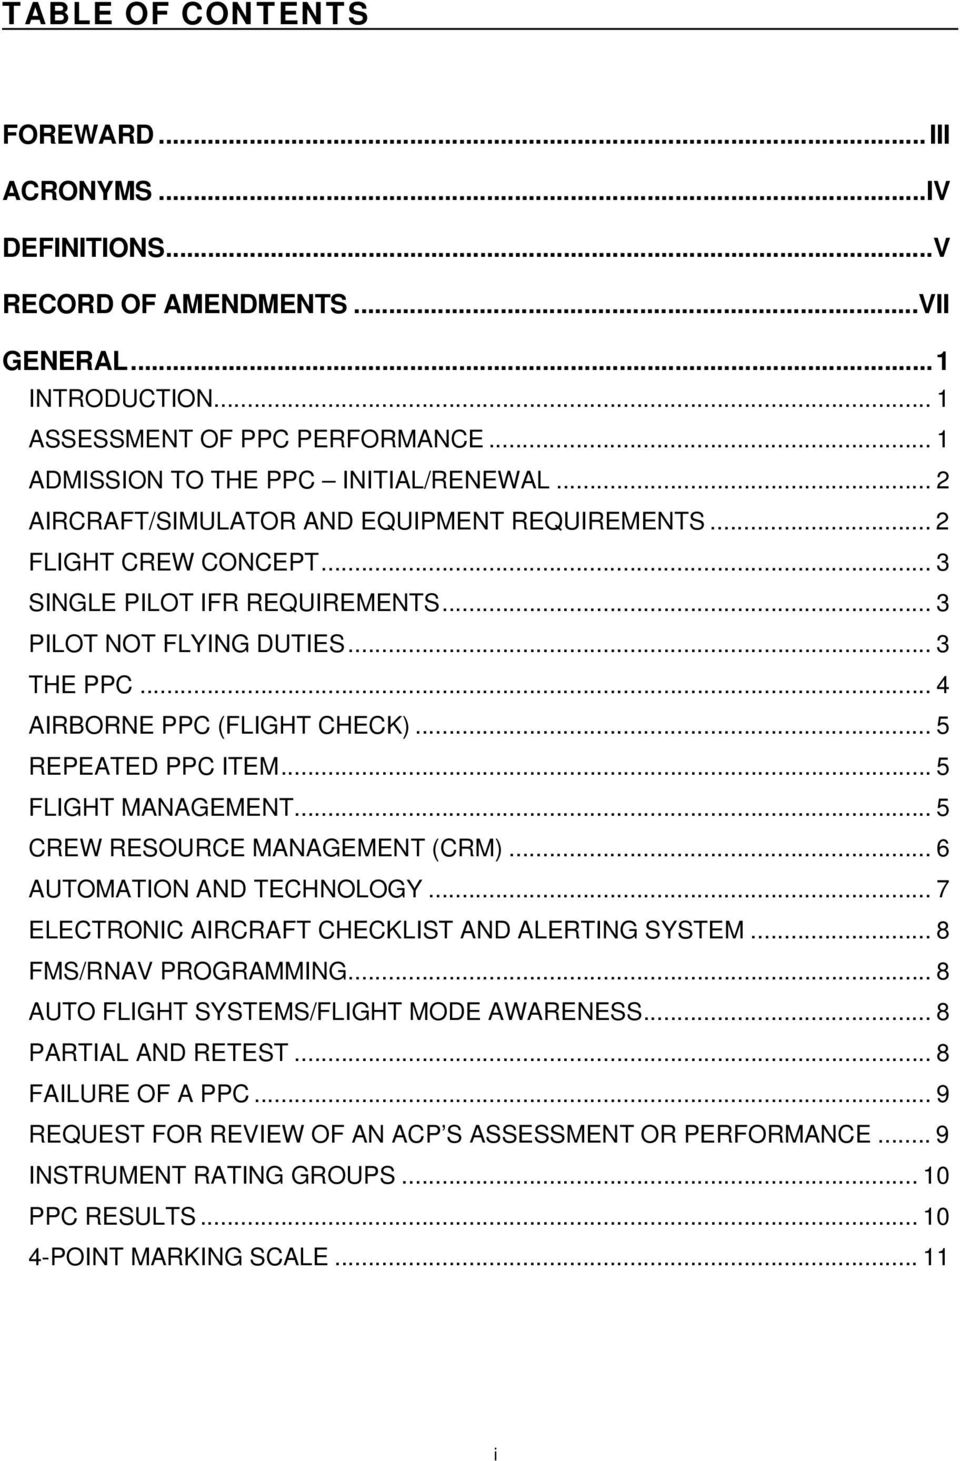 .. 5 REPEATED PPC ITEM... 5 FLIGHT MANAGEMENT... 5 CREW RESOURCE MANAGEMENT (CRM)... 6 AUTOMATION AND TECHNOLOGY... 7 ELECTRONIC AIRCRAFT CHECKLIST AND ALERTING SYSTEM... 8 FMS/RNAV PROGRAMMING.